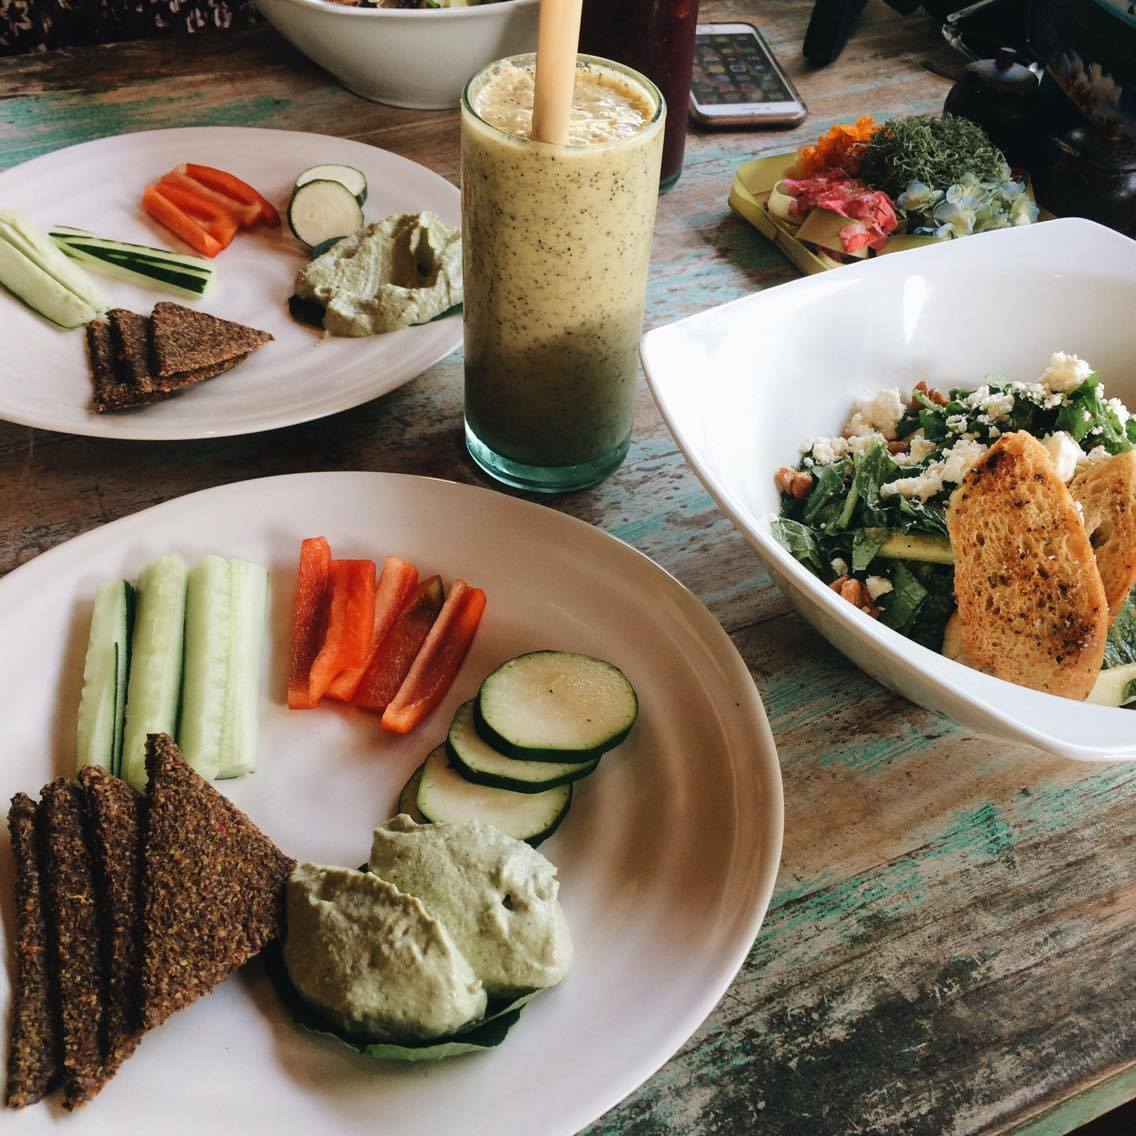 One Love- passionfruit, vanilla, mylk & honey and super high in plants sterols, blended smoothie    (Left) Smooth zucchini tahini hummus served with flax crisps and raw veggies    (Right) Grand Puri- wild greens, feta cheese, sliced apple & caramelised cashews ft. Clear's signature dressing